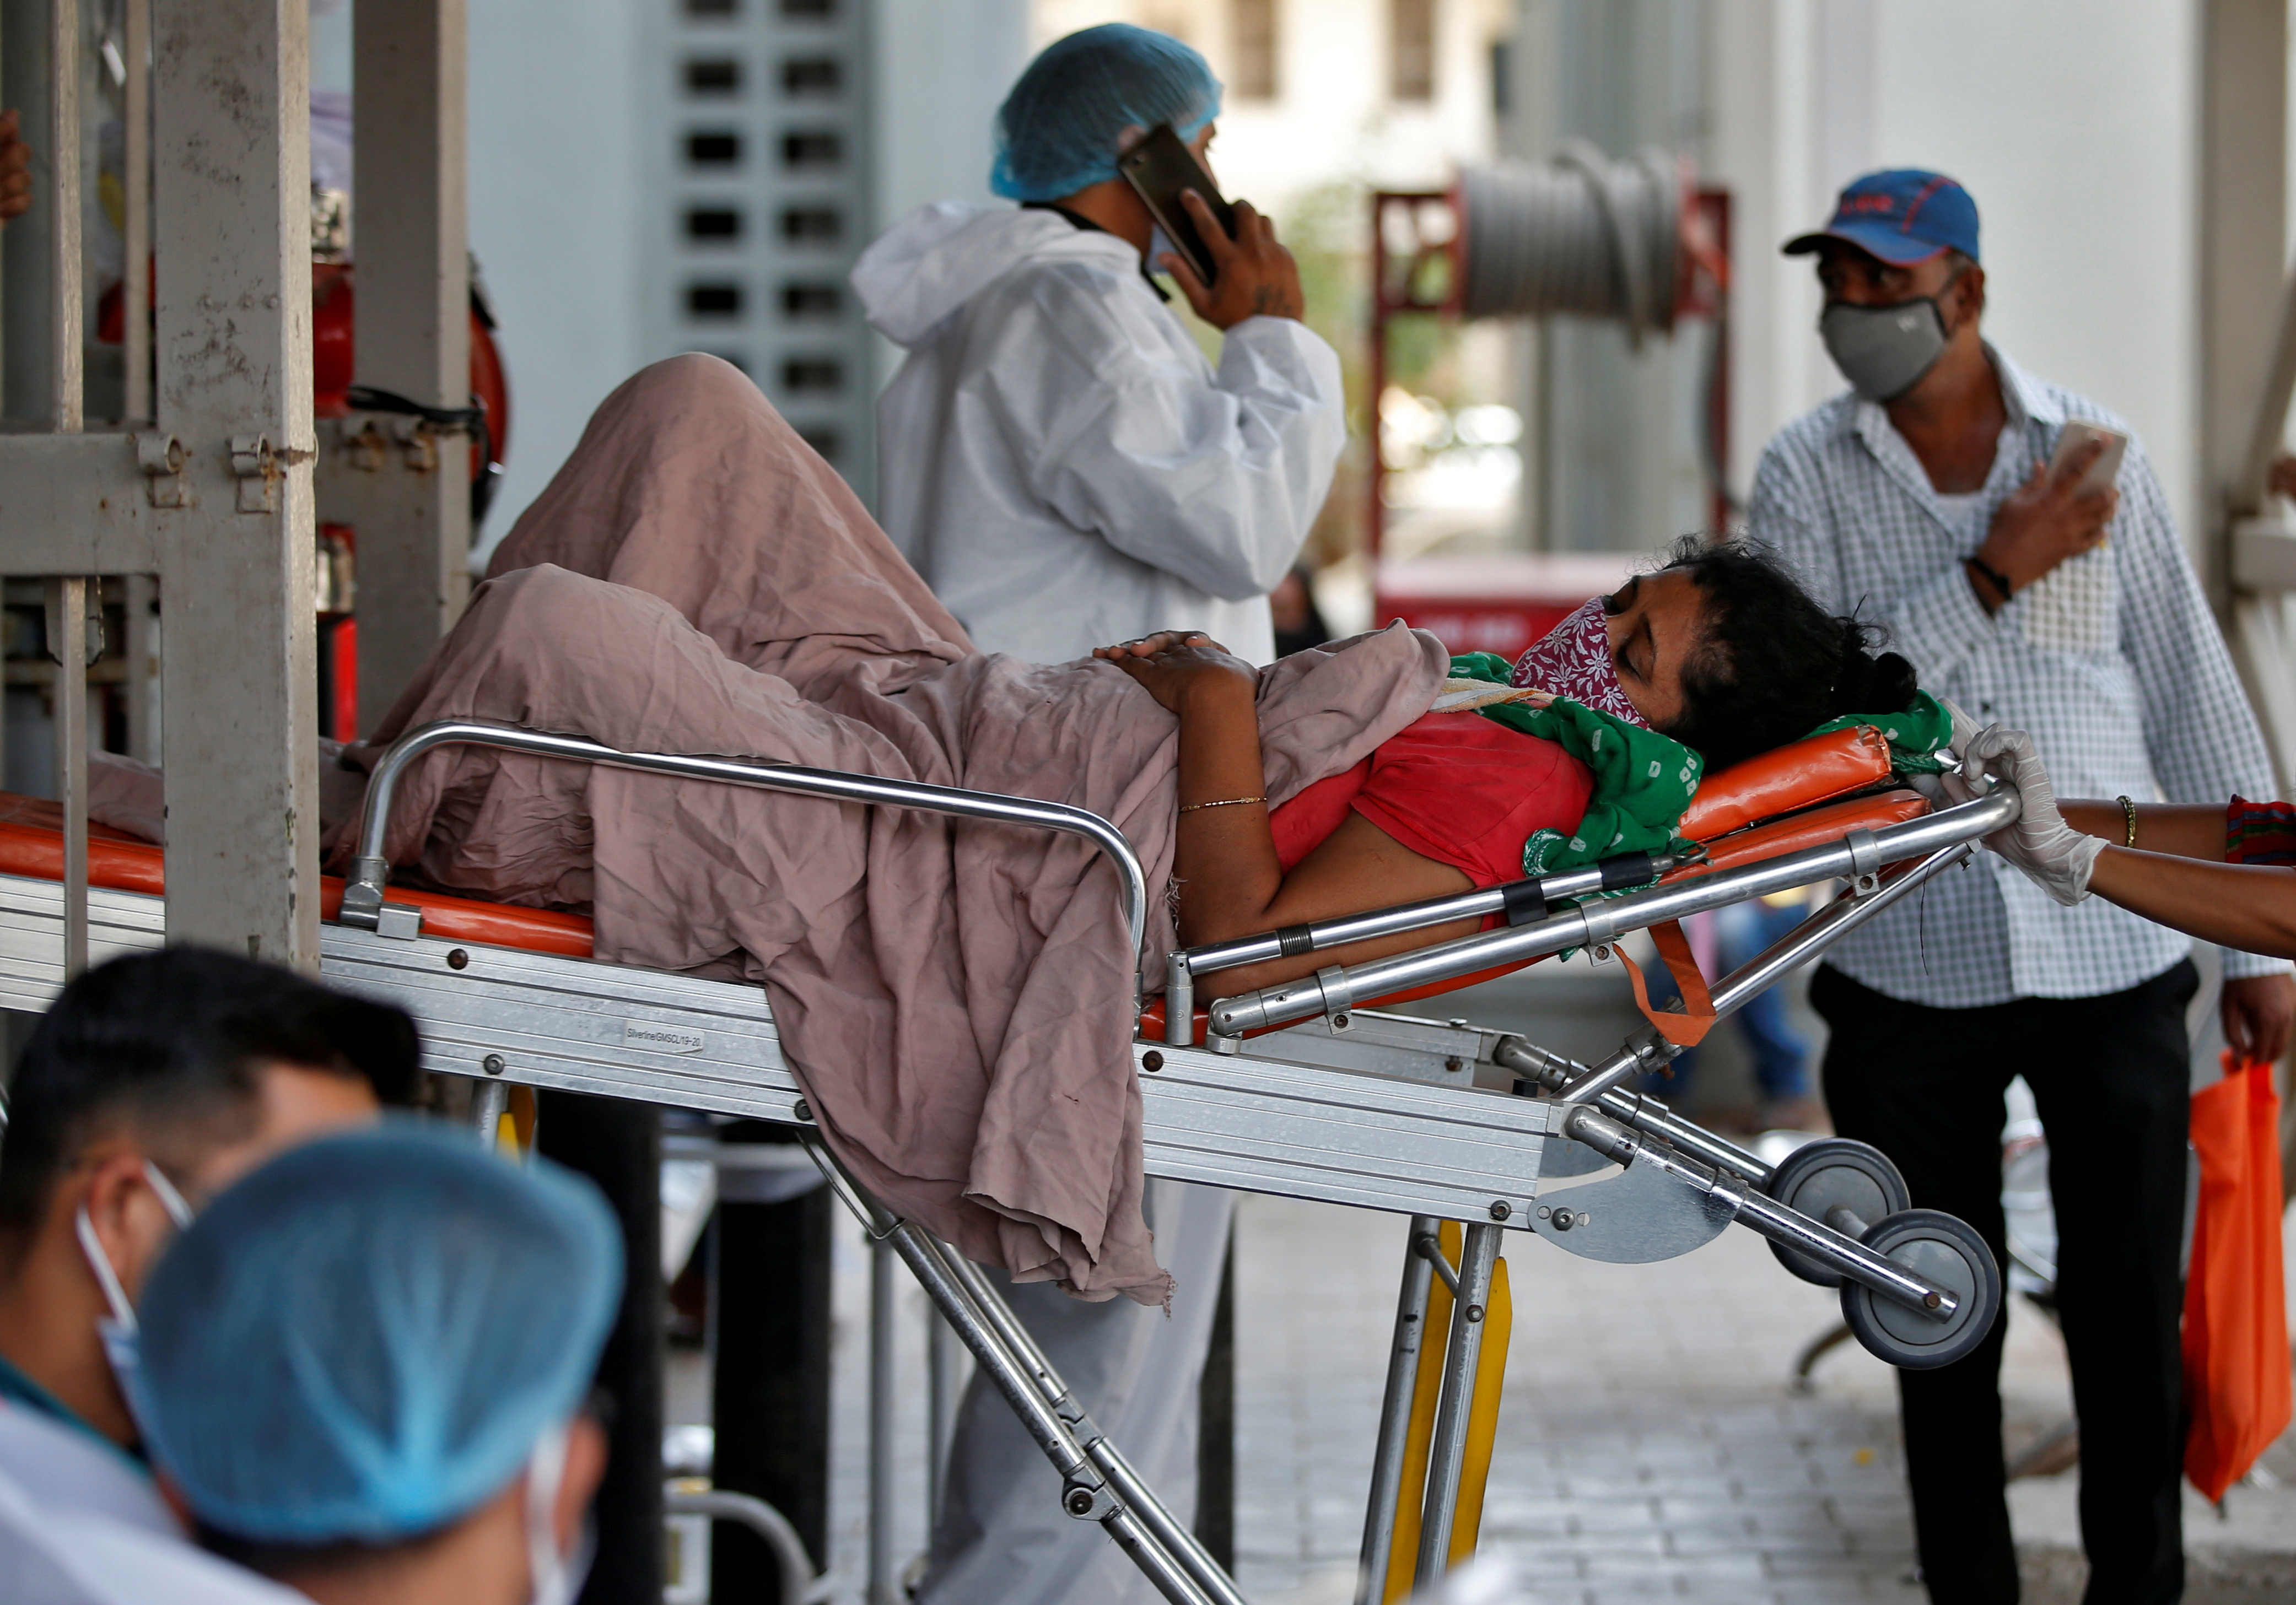 India reports more than 2,000 COVID-19 deaths in single day | Reuters